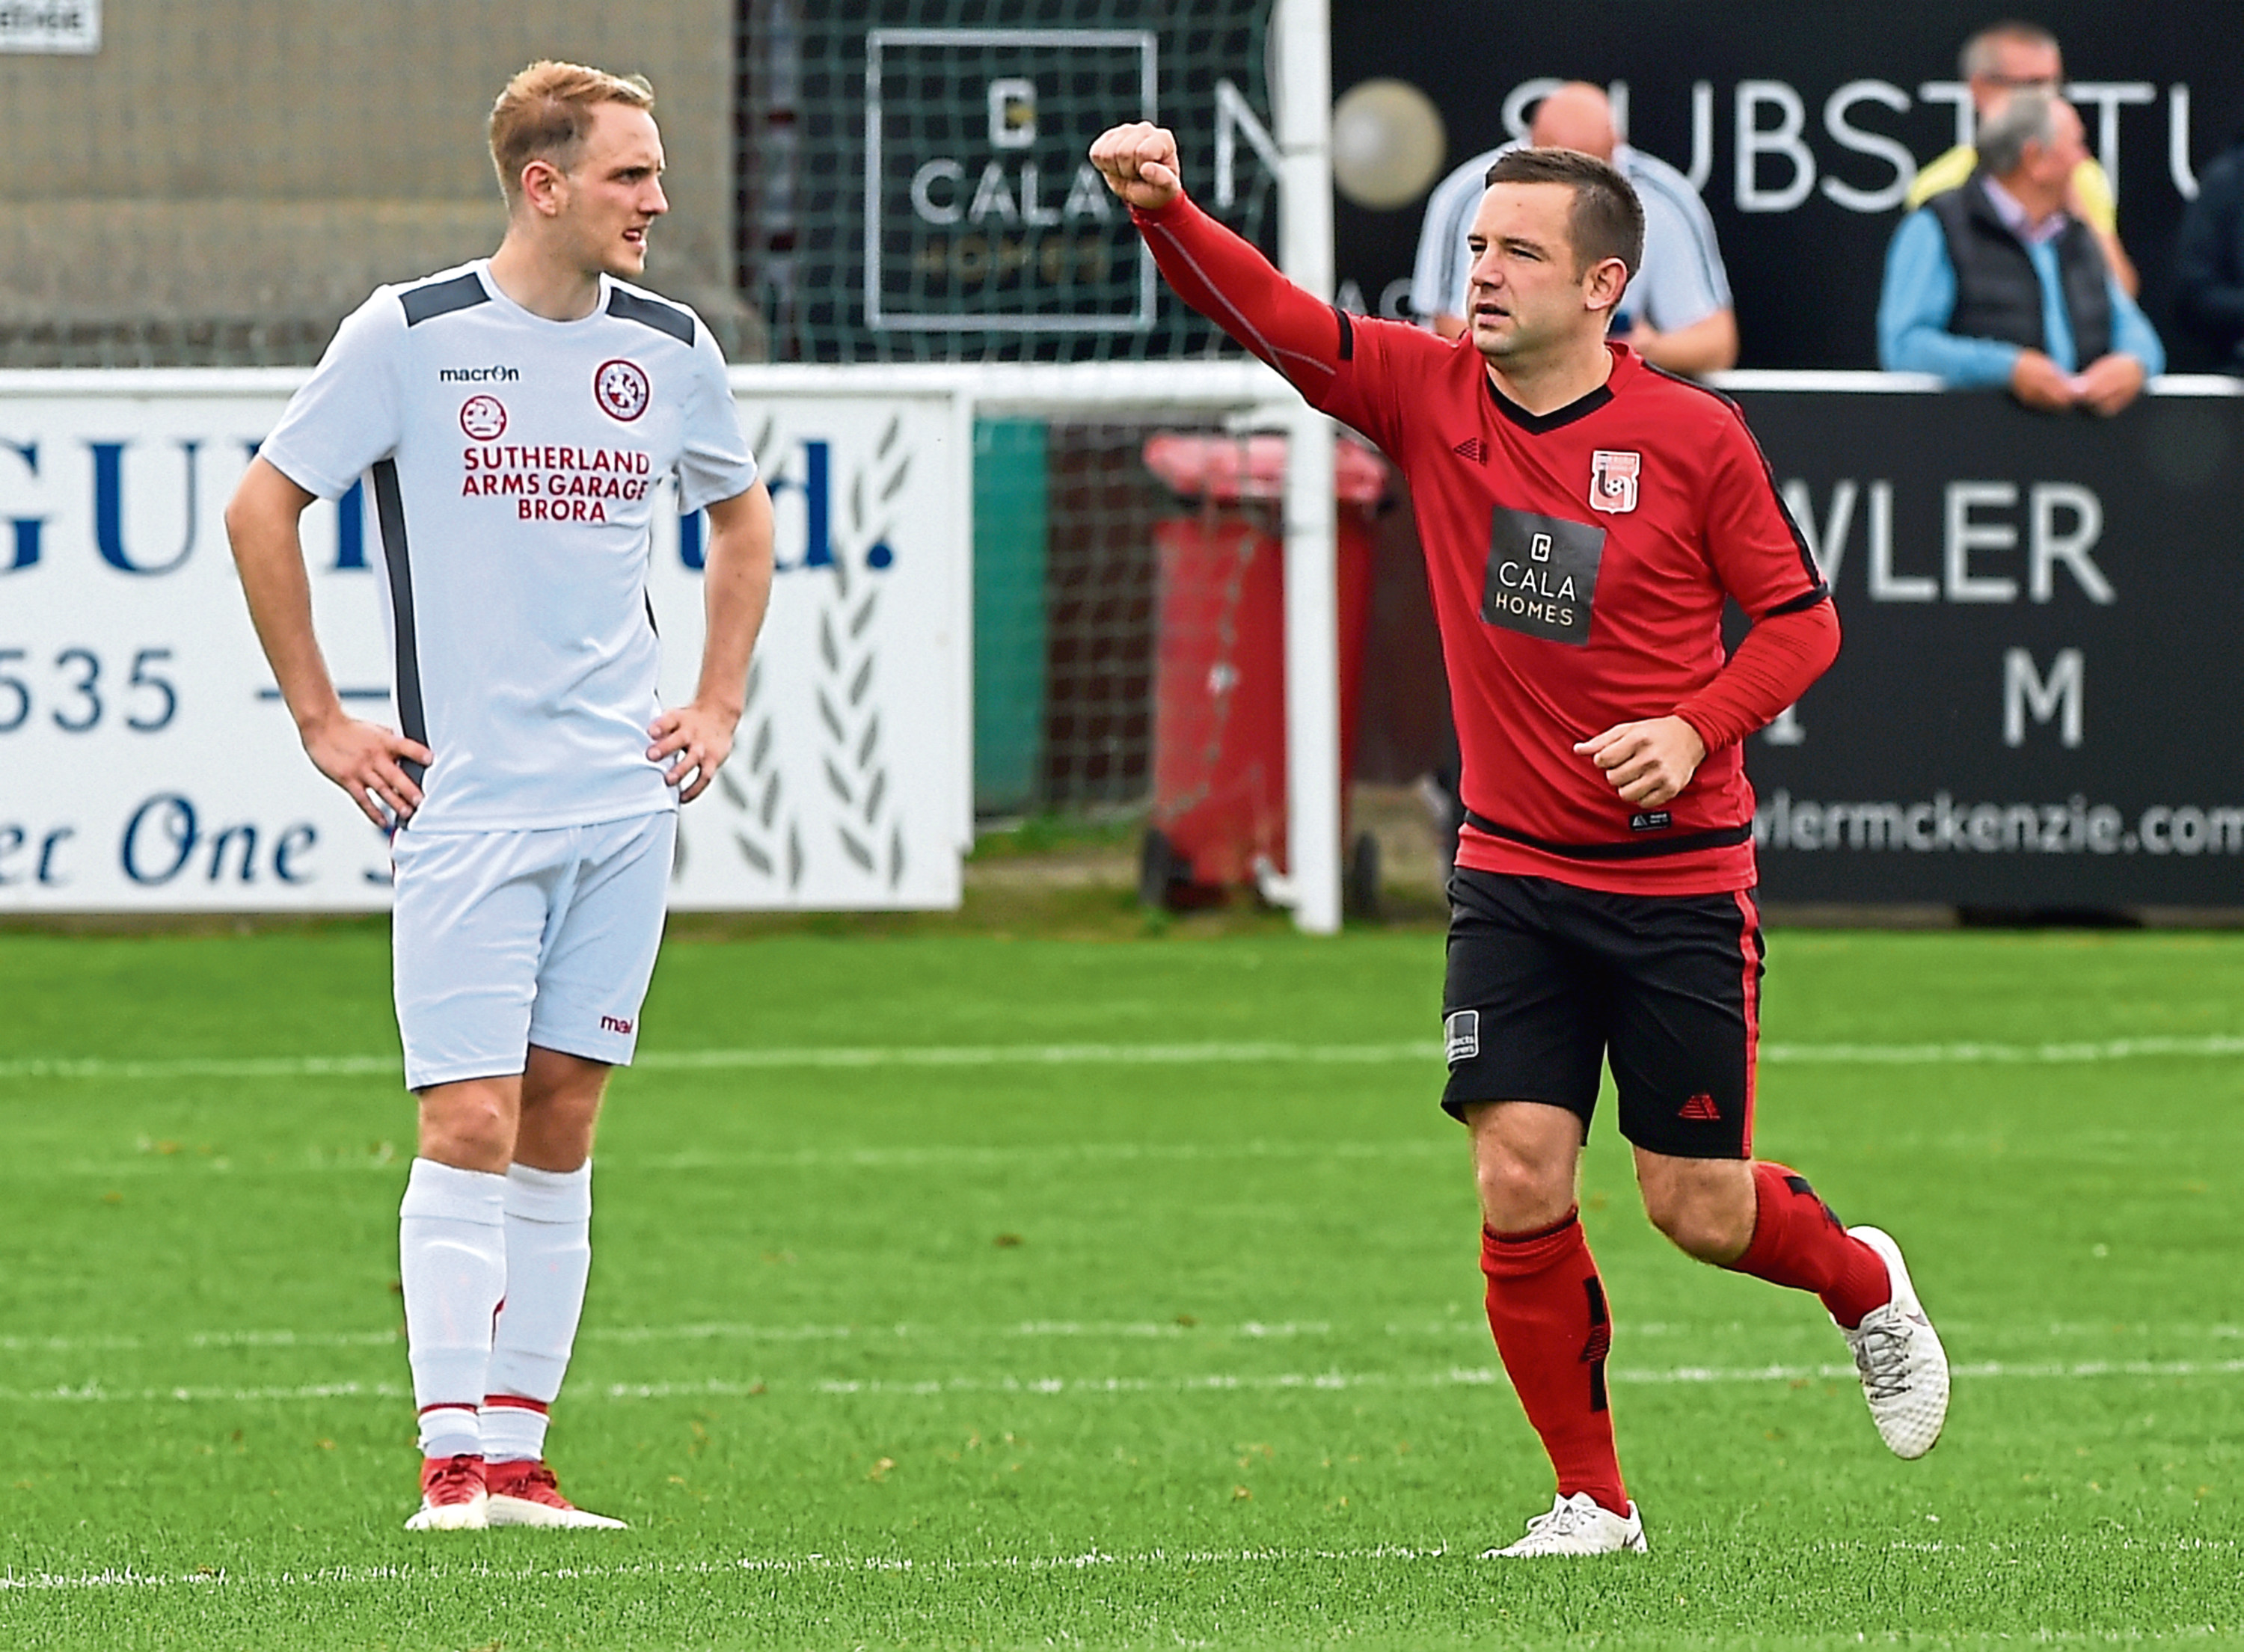 Neil Gauld celebrating after scoring a pen to make it 1-0. Picture by Kenny Elrick